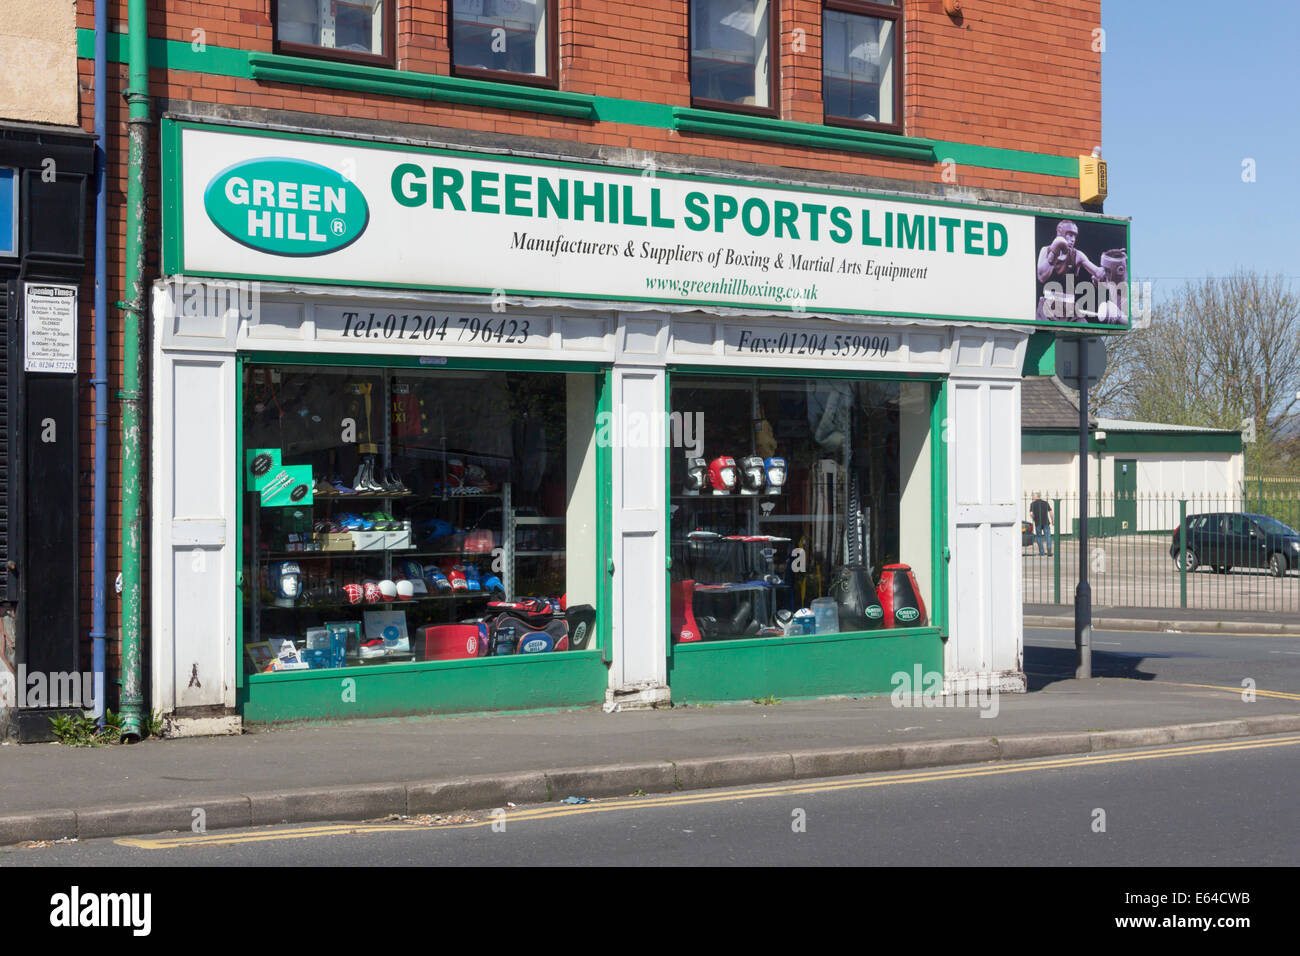 Business premises of Greenhill Sports Limited, makers of